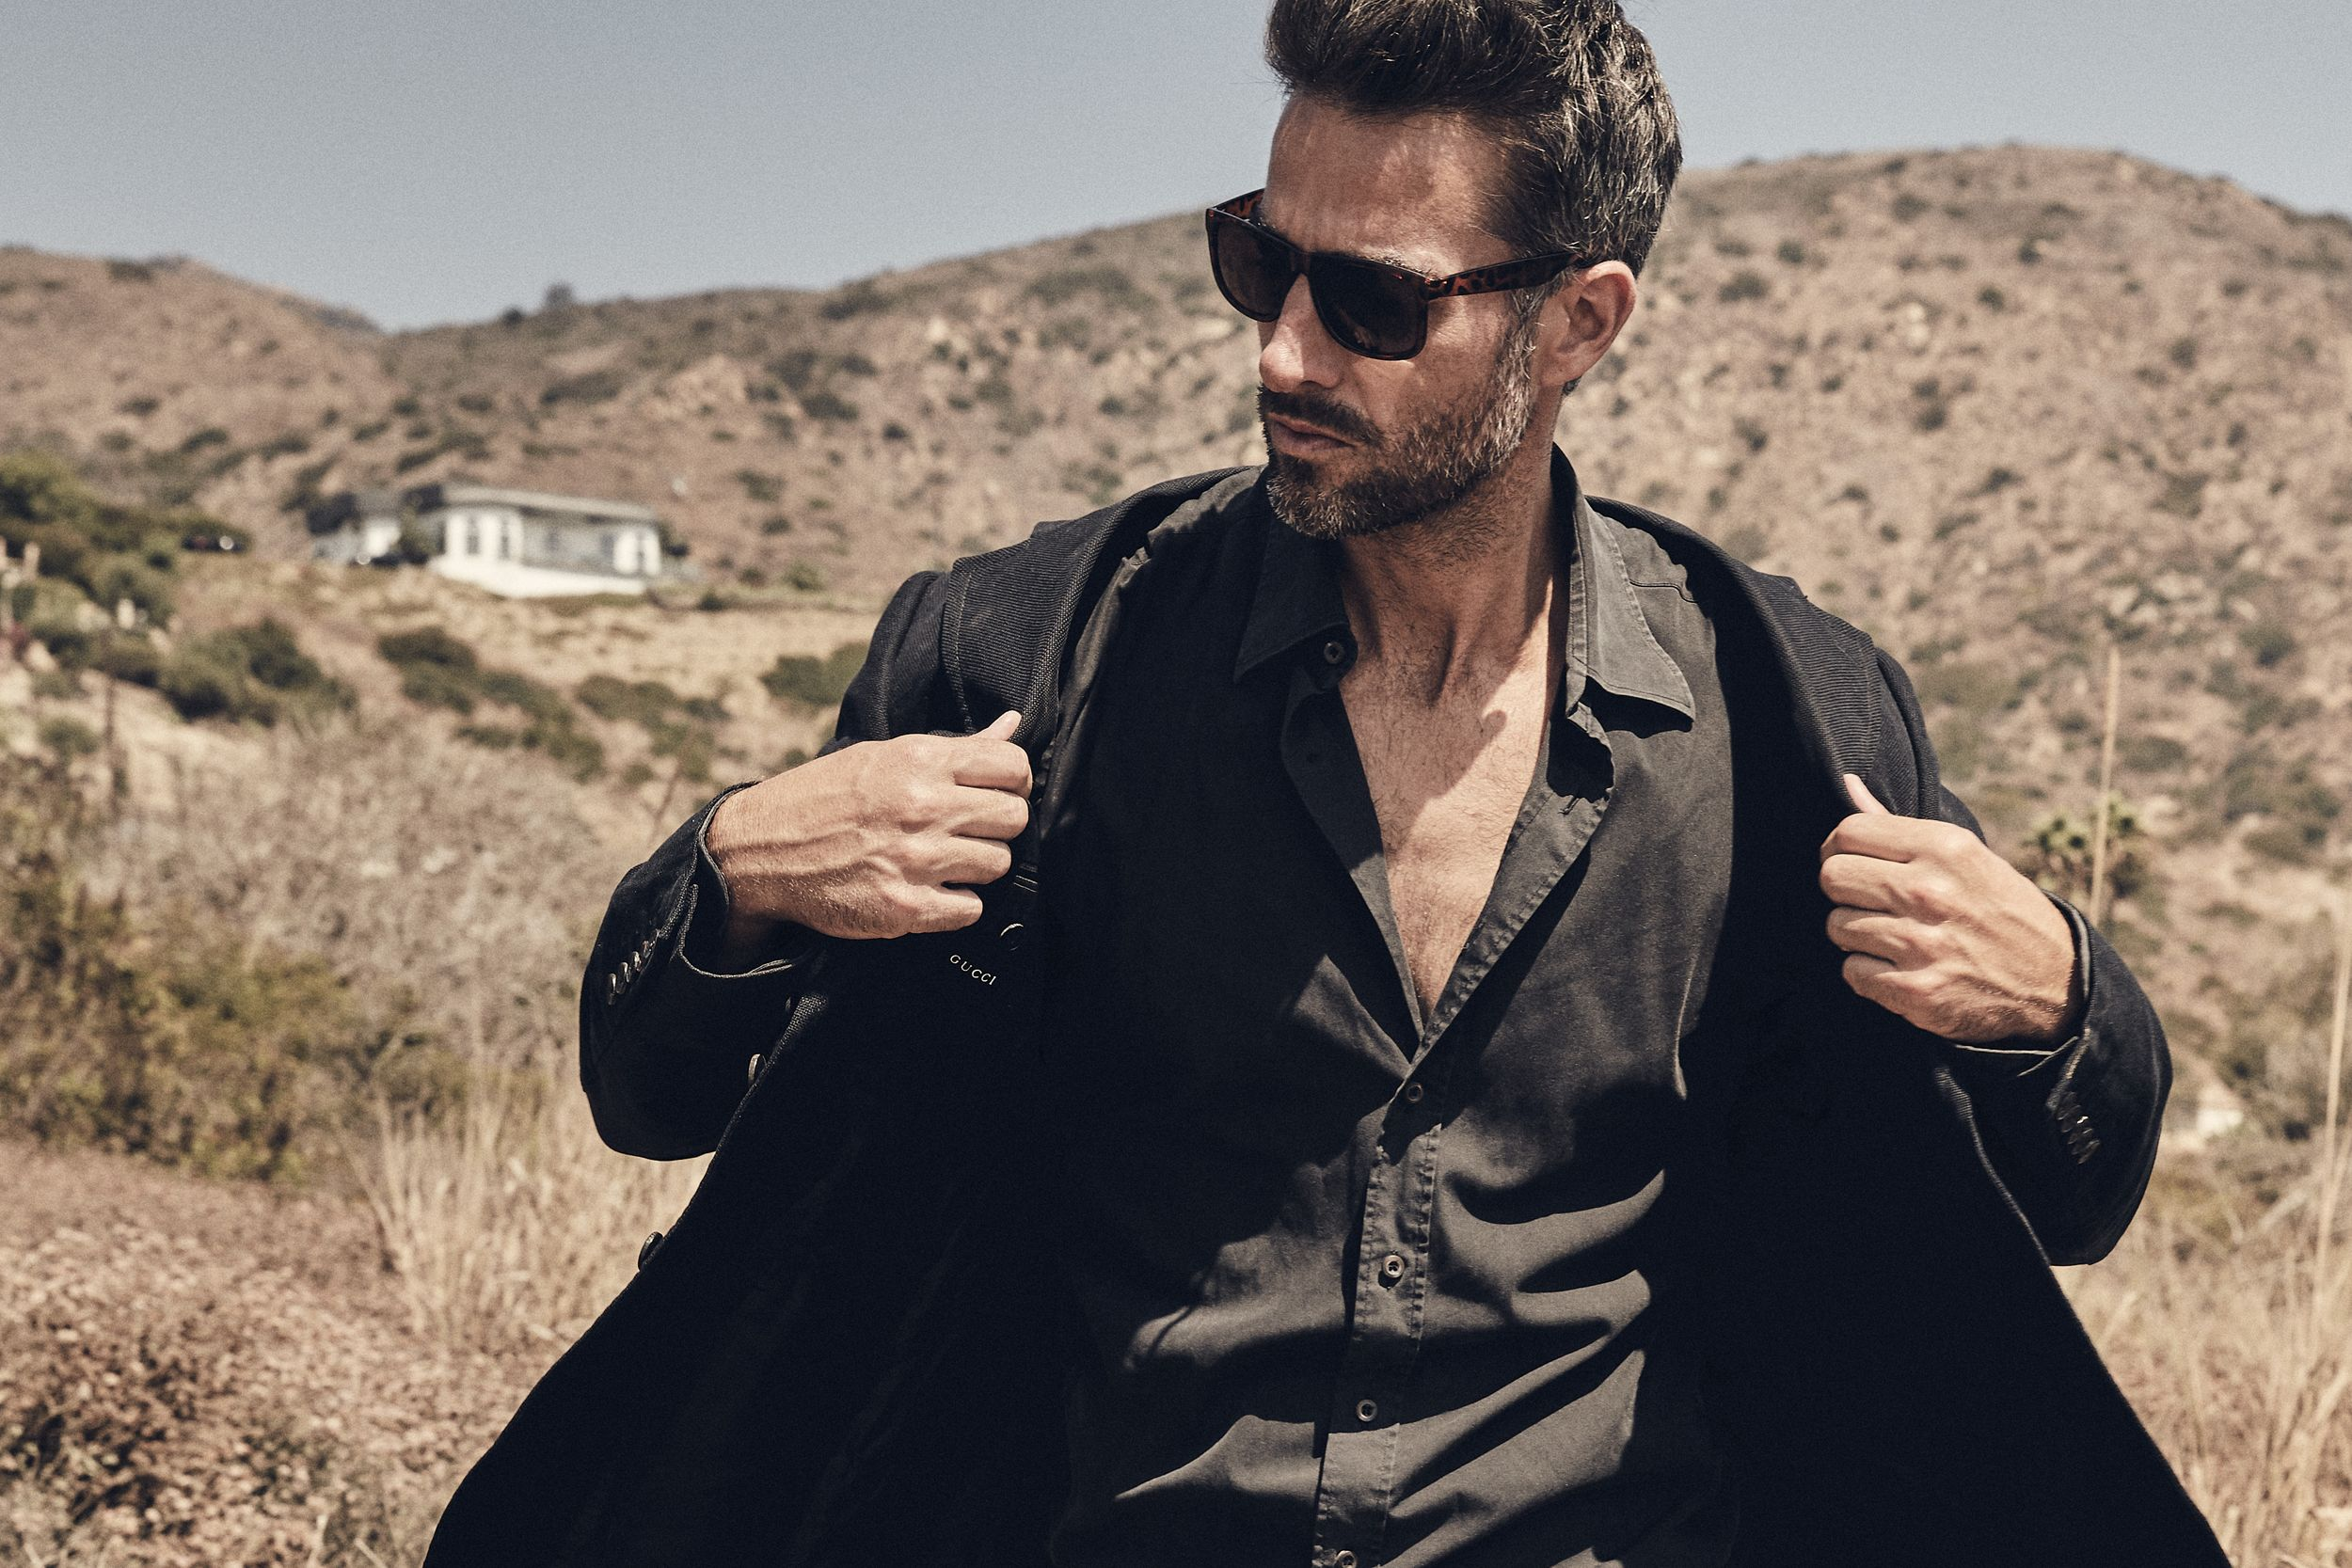 Model Colin Devitt from LA Models wearing RayBan's and Gucci suit jacket blazer at El Matador State Beach Malibu, CA